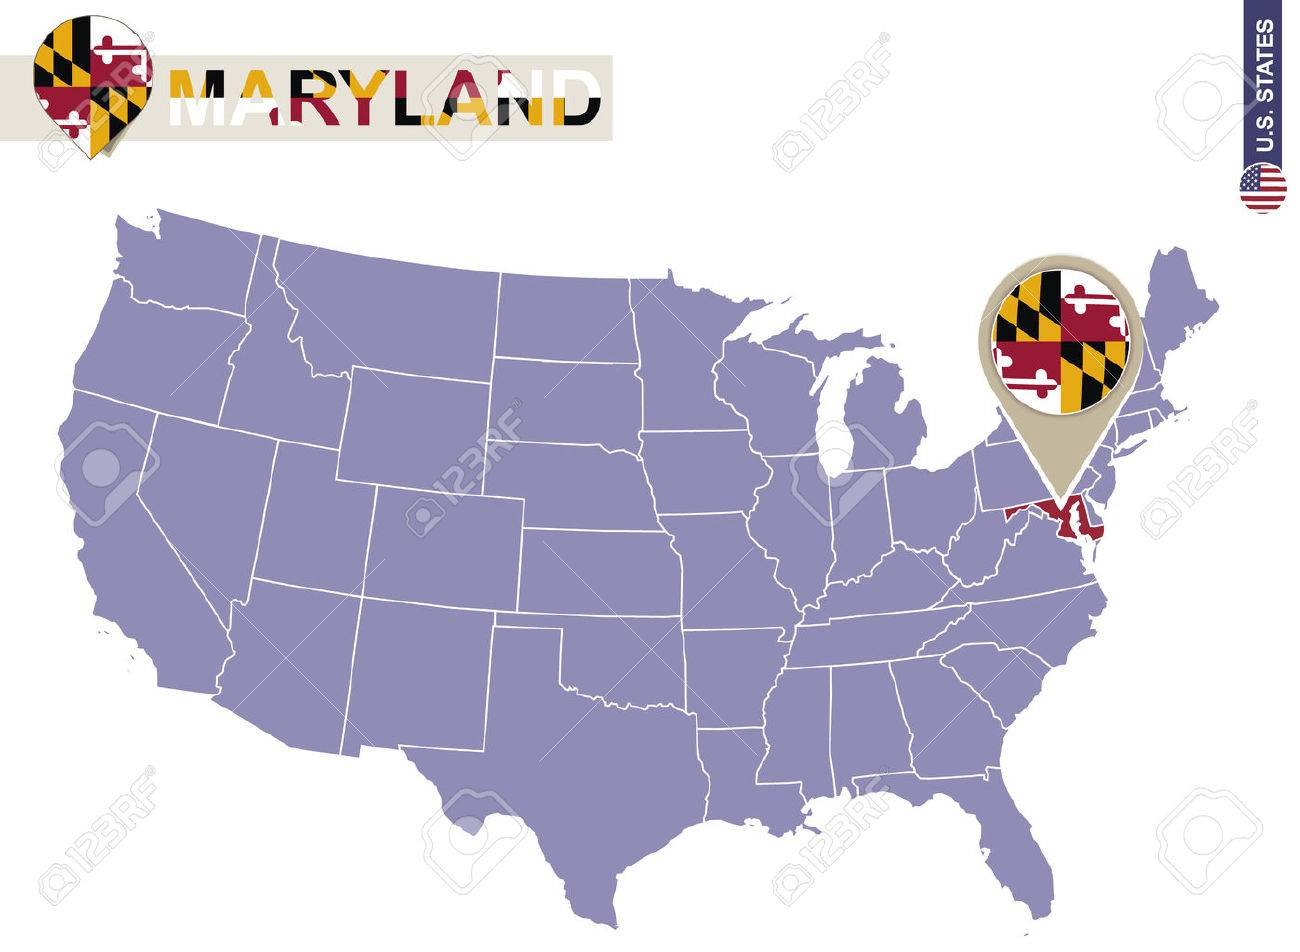 Maryland State On USA Map Maryland Flag And Map US States Royalty